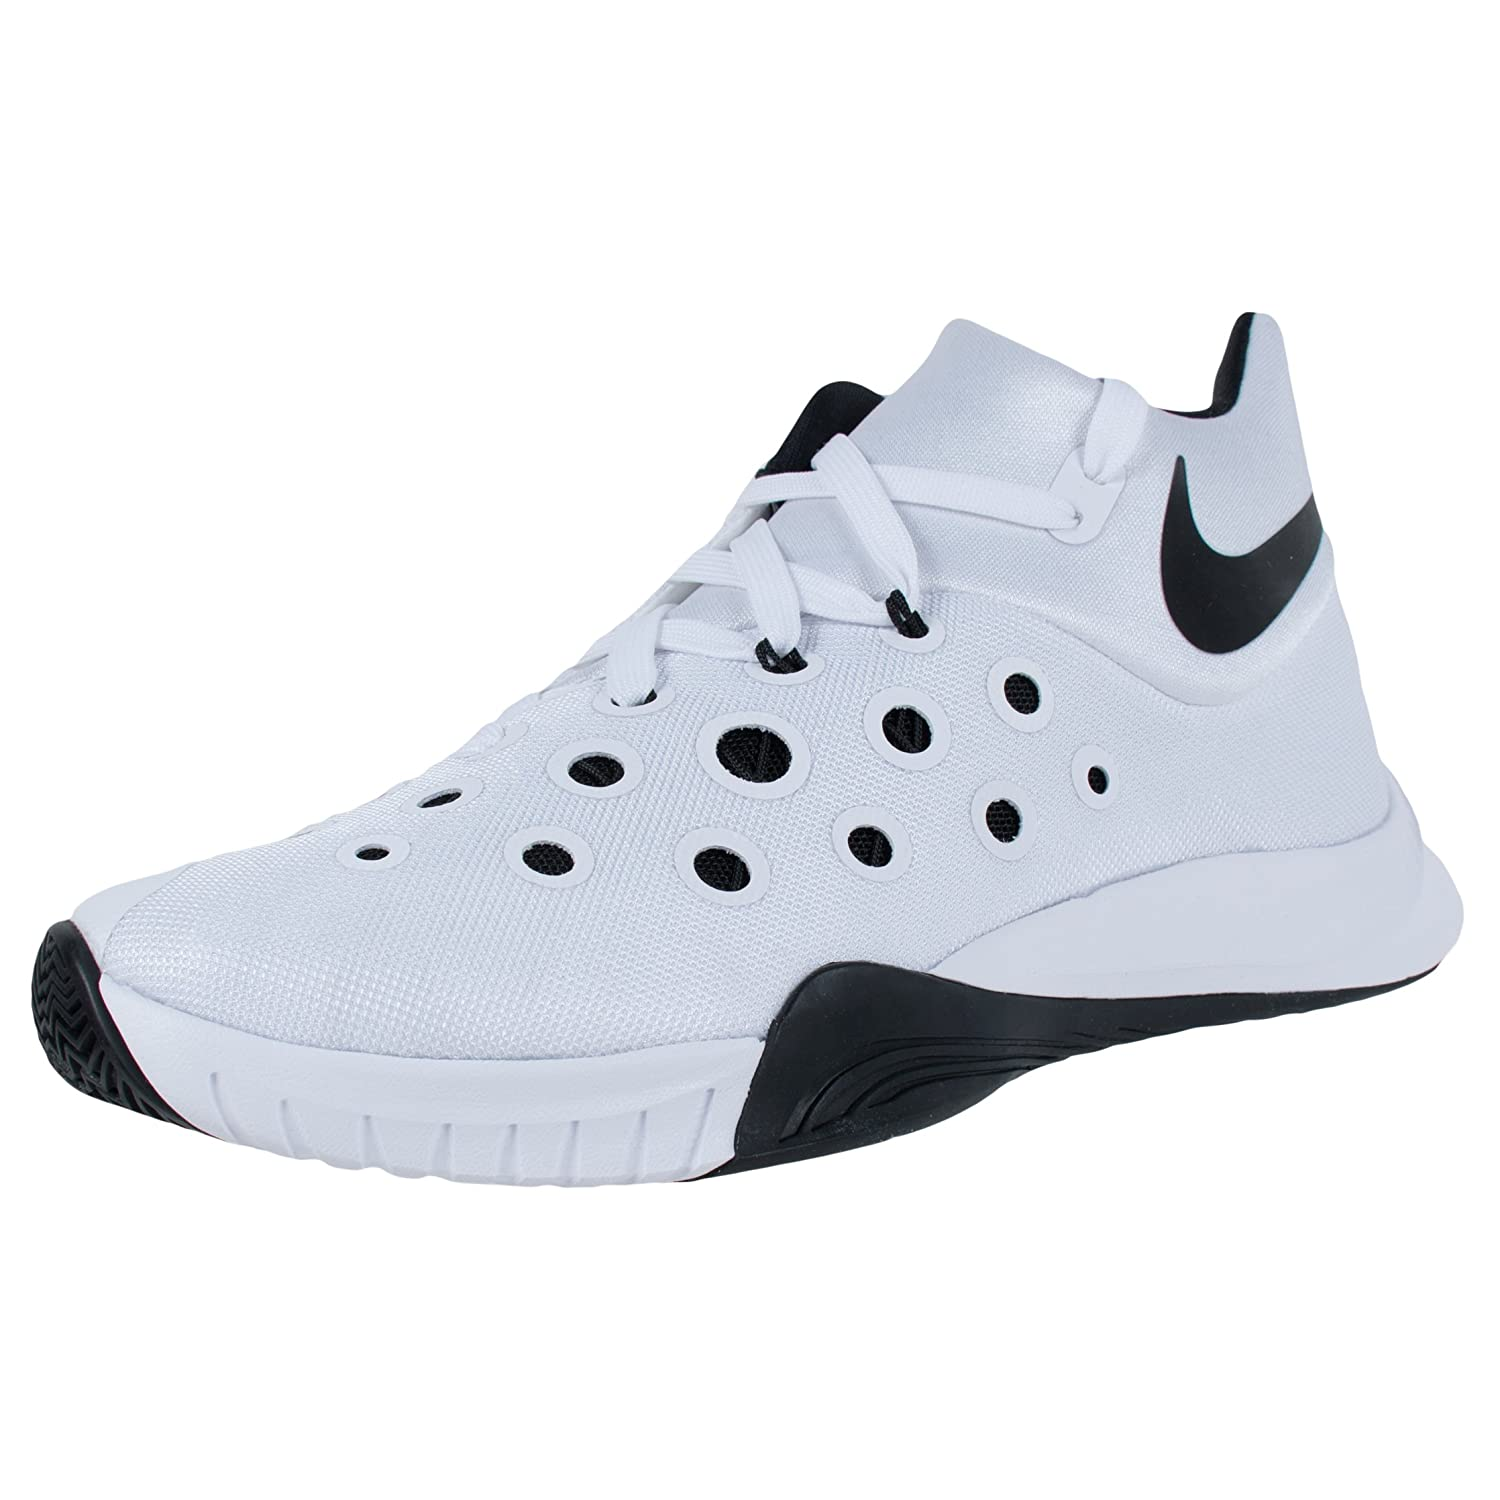 Nike Herren Zoom Hyperquickness 2015 Basketballschuhe  46 EU|White/Black